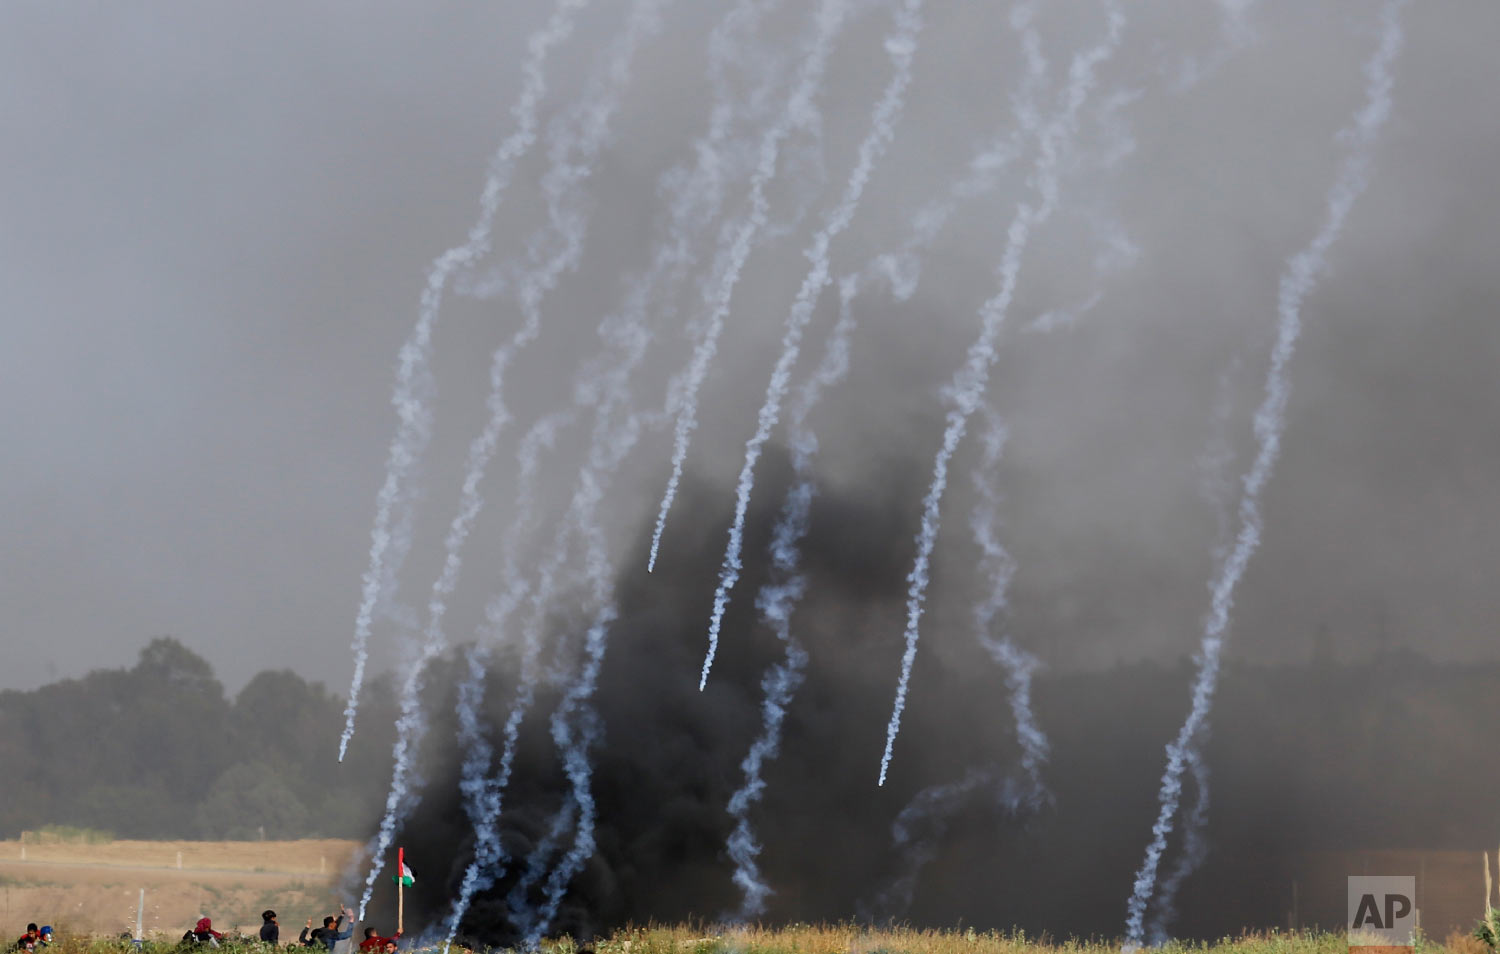 Teargas canisters fired by Israeli troops falls down at Palestinians during a demonstration near the Gaza Strip border with Israel, in eastern Gaza City, Friday, March 30, 2018.(AP Photo/Hatem Moussa)